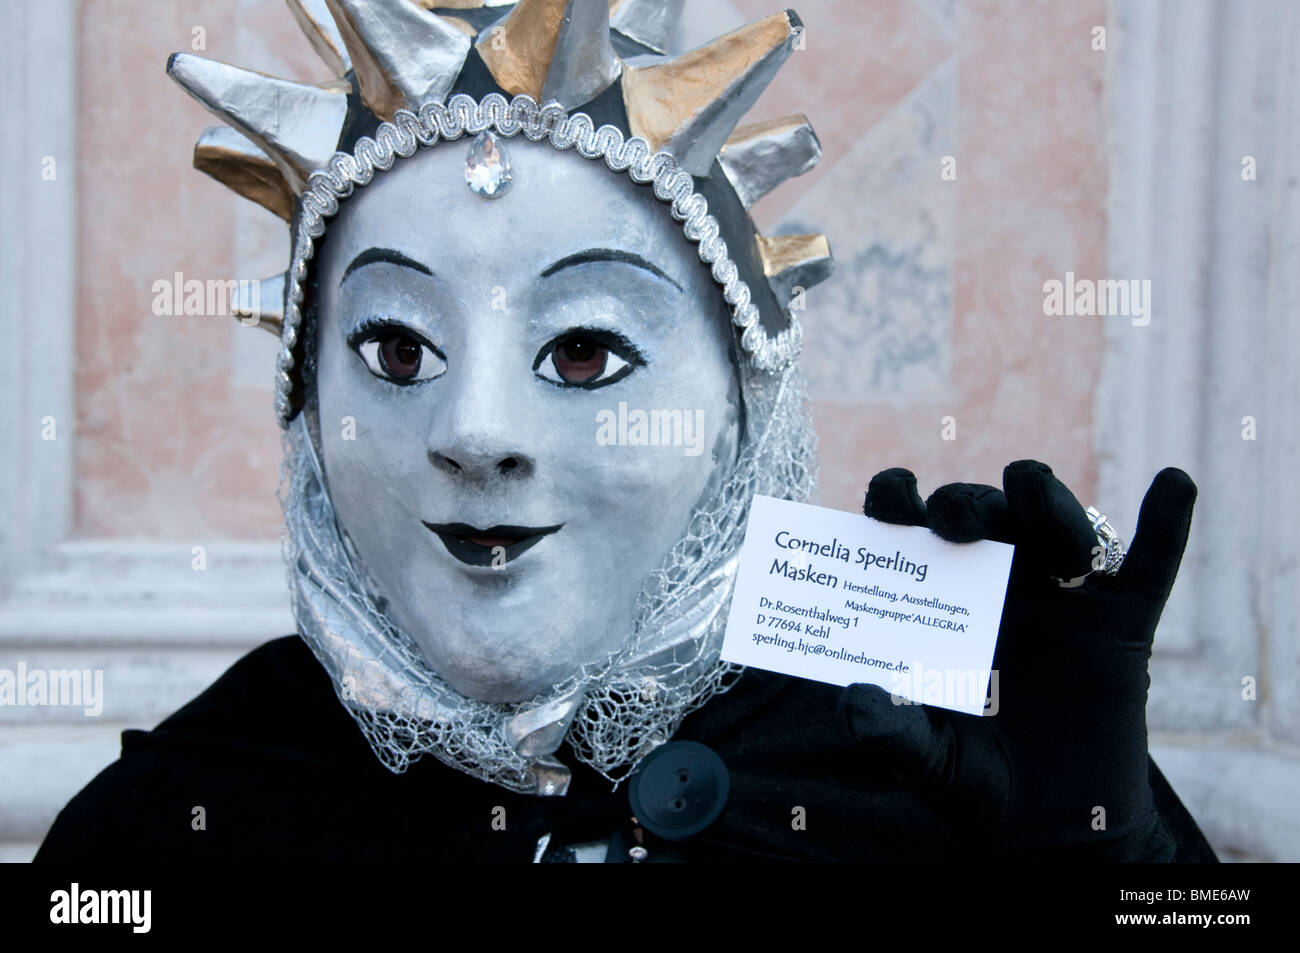 Venice Italy Carnival Costumed participant - Stock Image